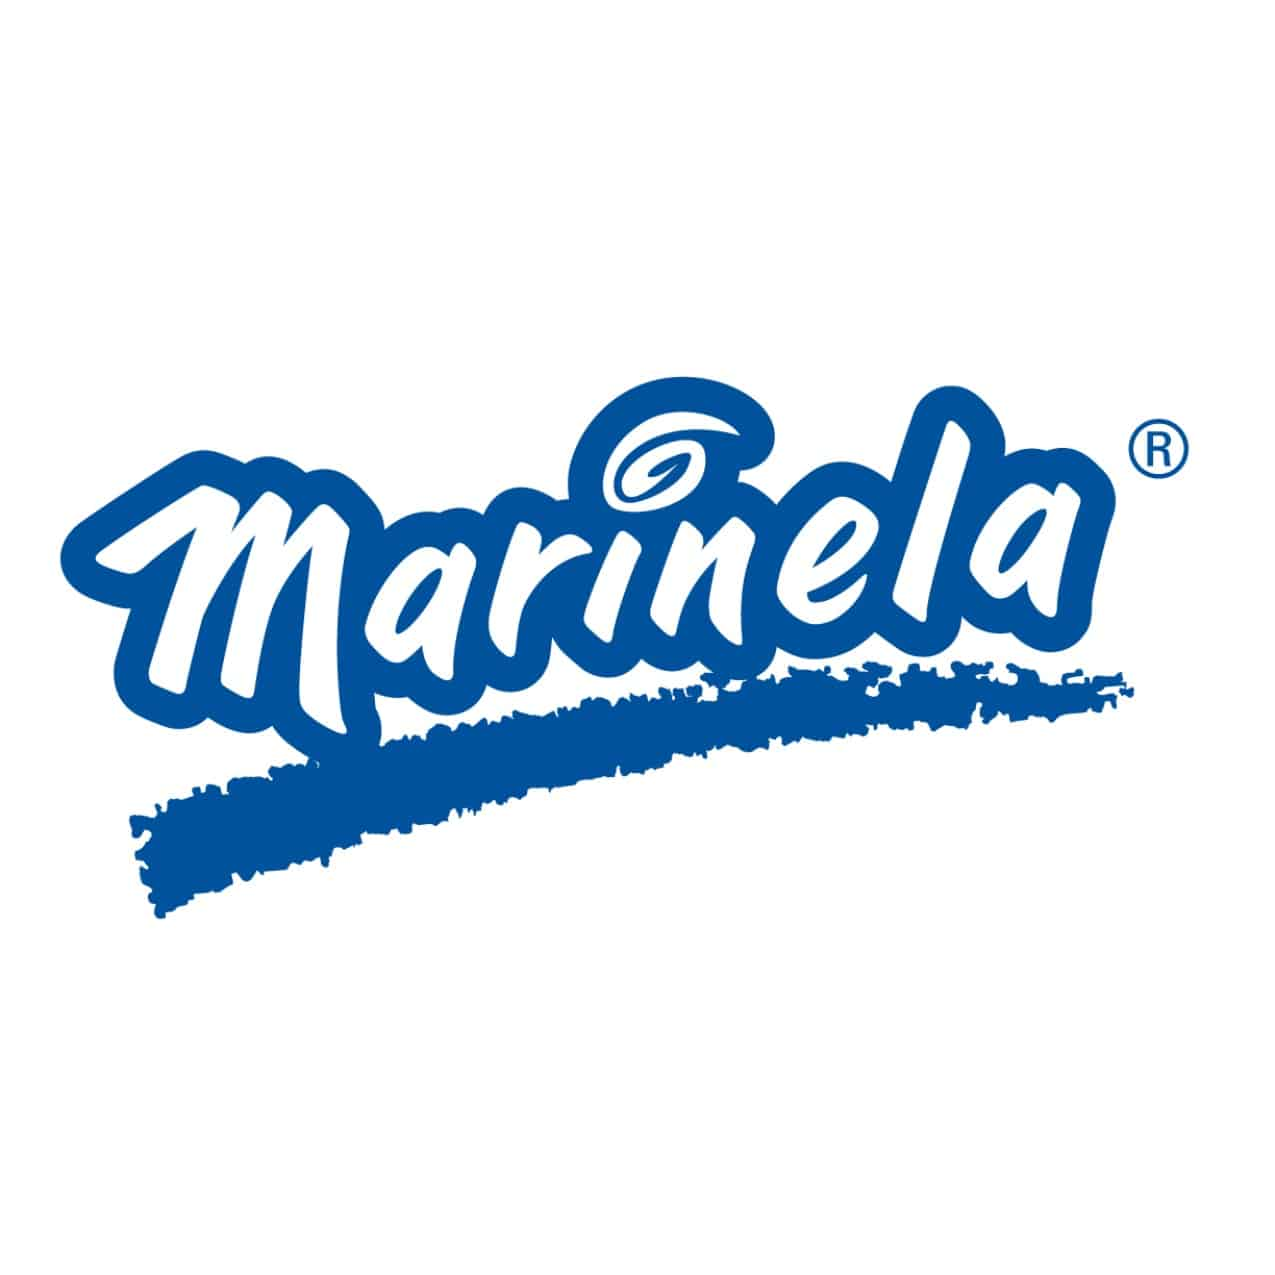 Gansito Marinela